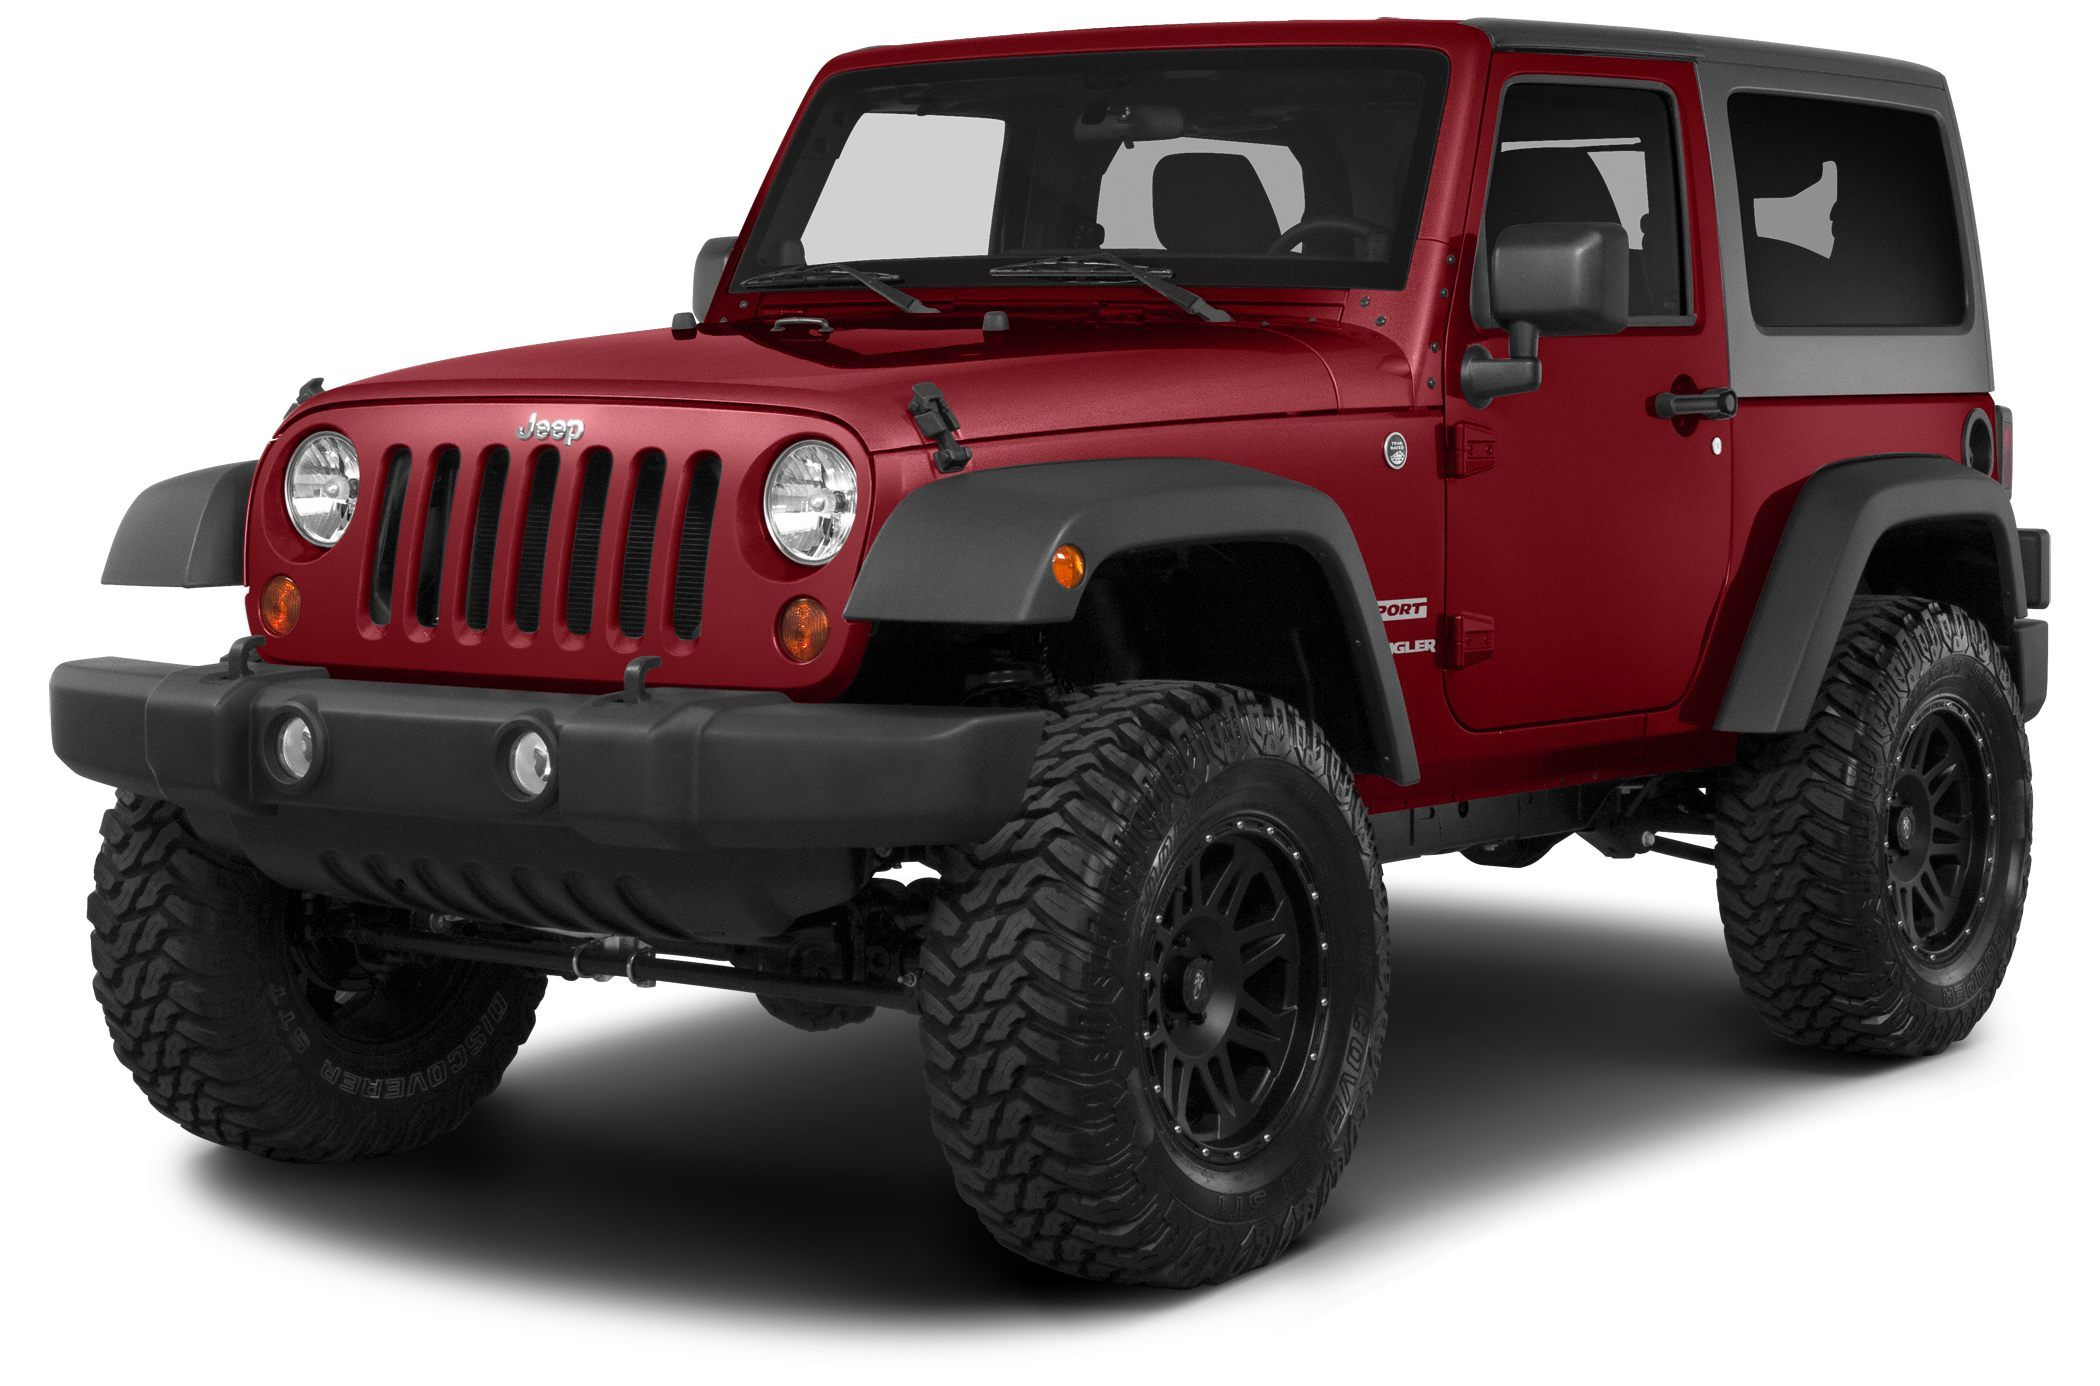 New 2014 Jeep Wrangler Price Photos Reviews Safety Ratings